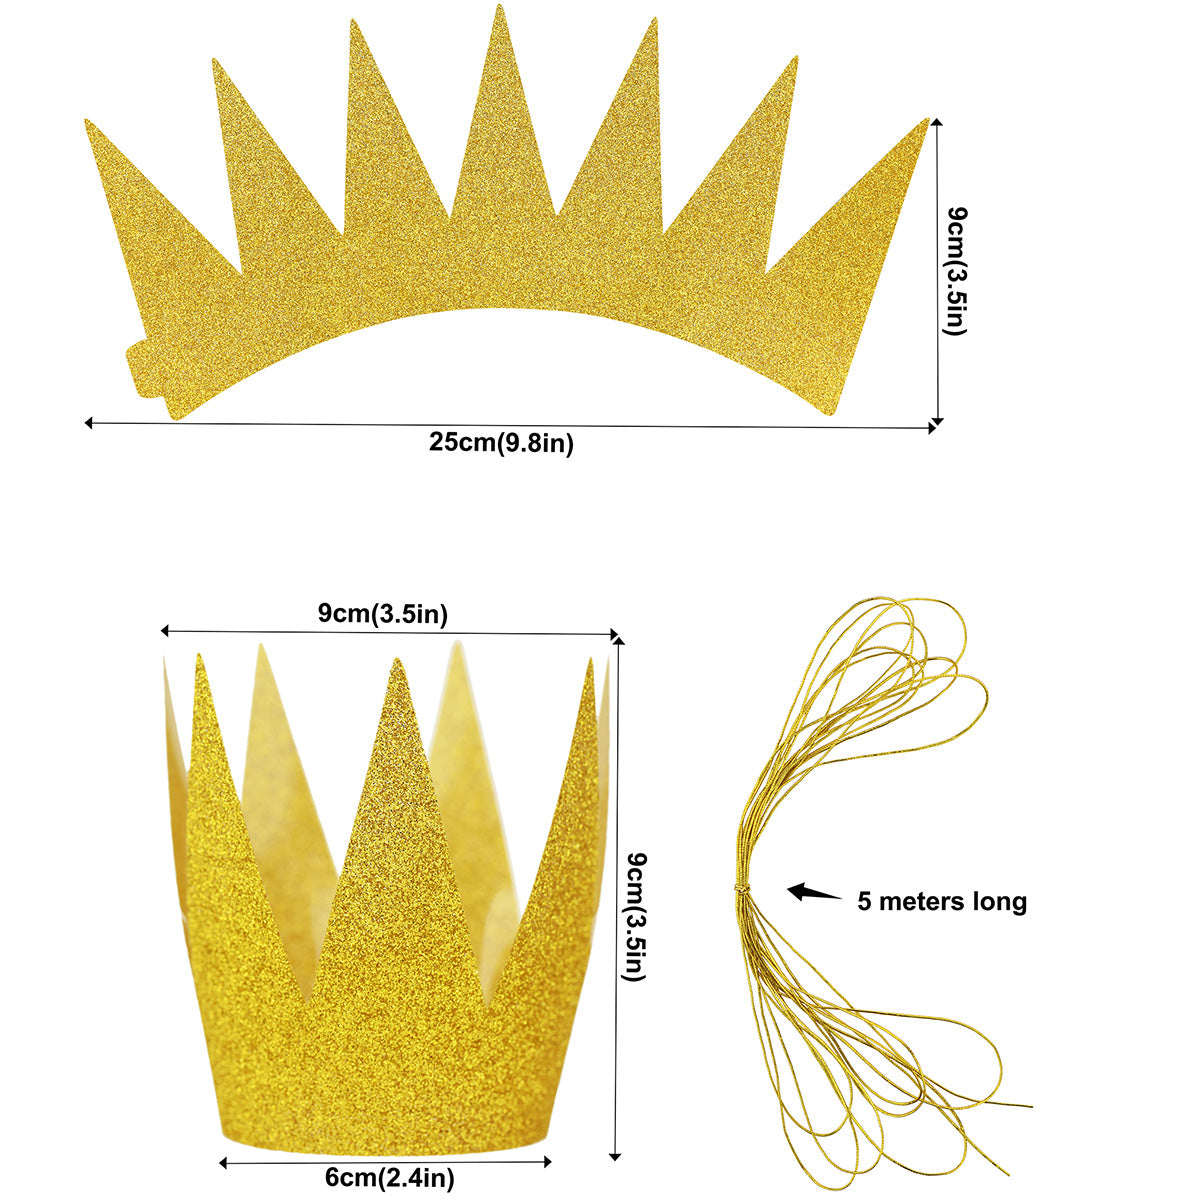 24 Golden Glittery (Princess) Crown Party Hats